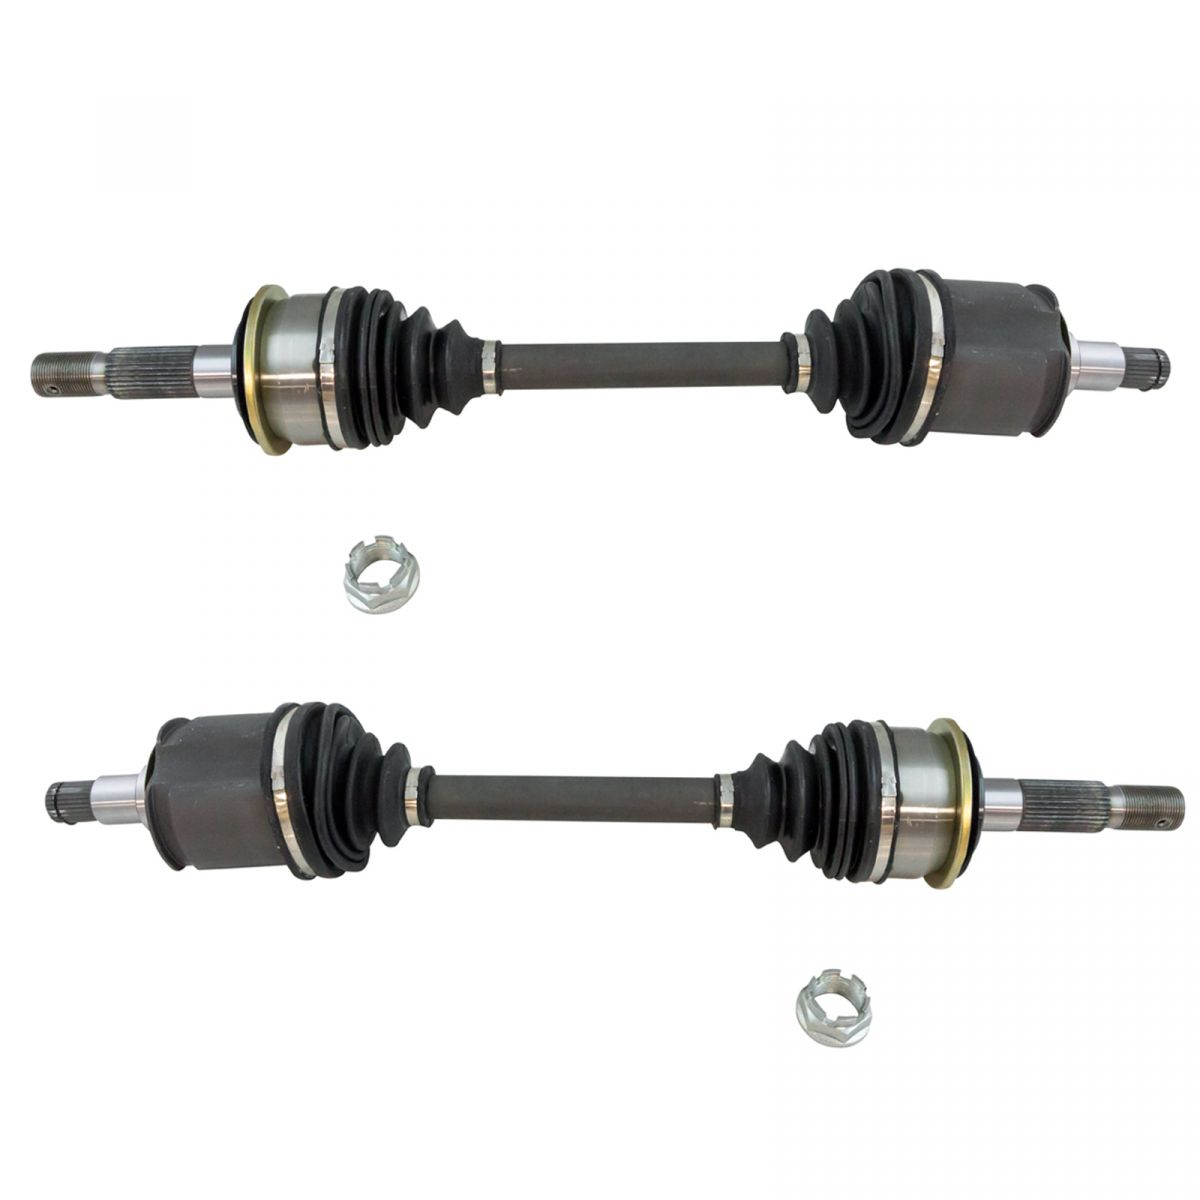 New  Complete Front CV Axle Shaft Assembly LH RH Pair 2pc Set for Sequoia Tundra